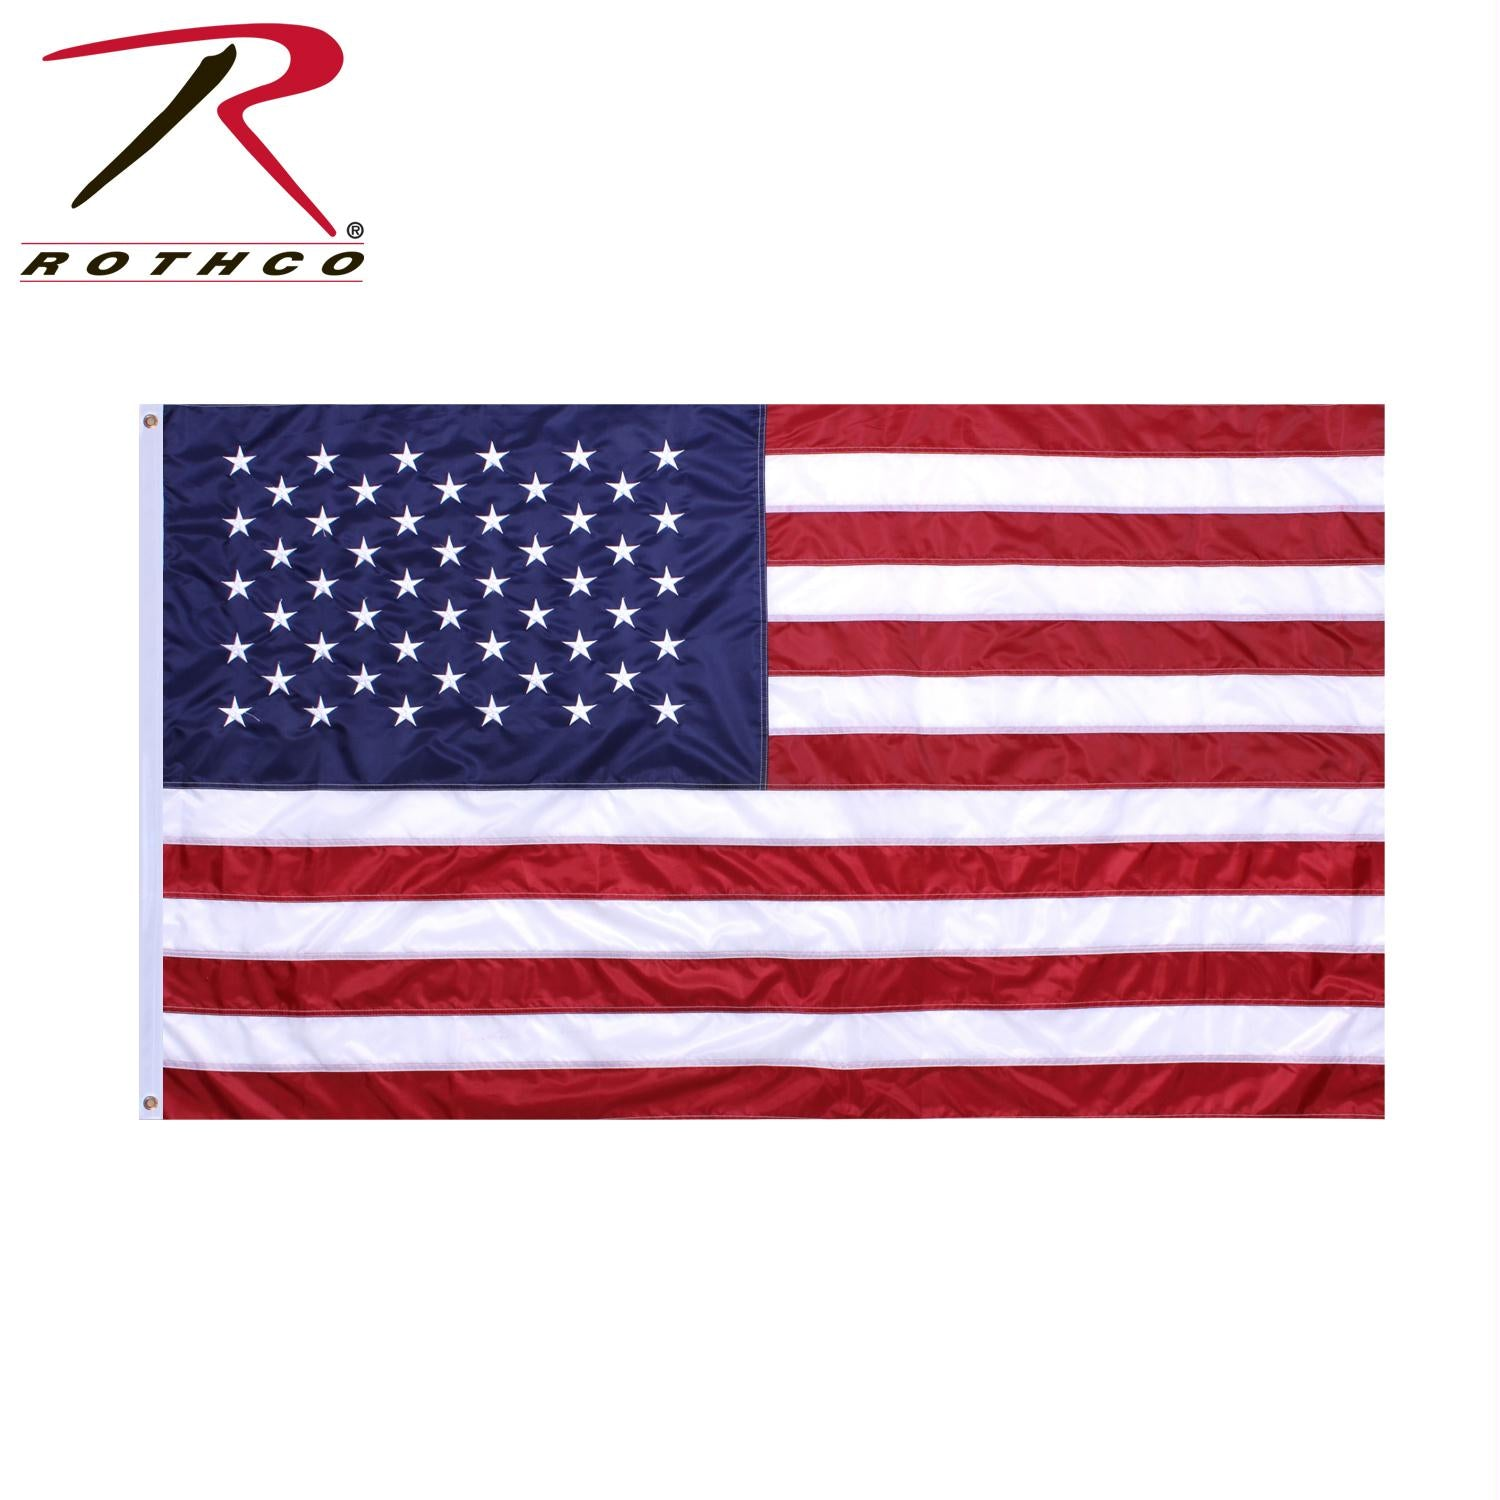 Rothco Deluxe US Flag - 3' x 5'